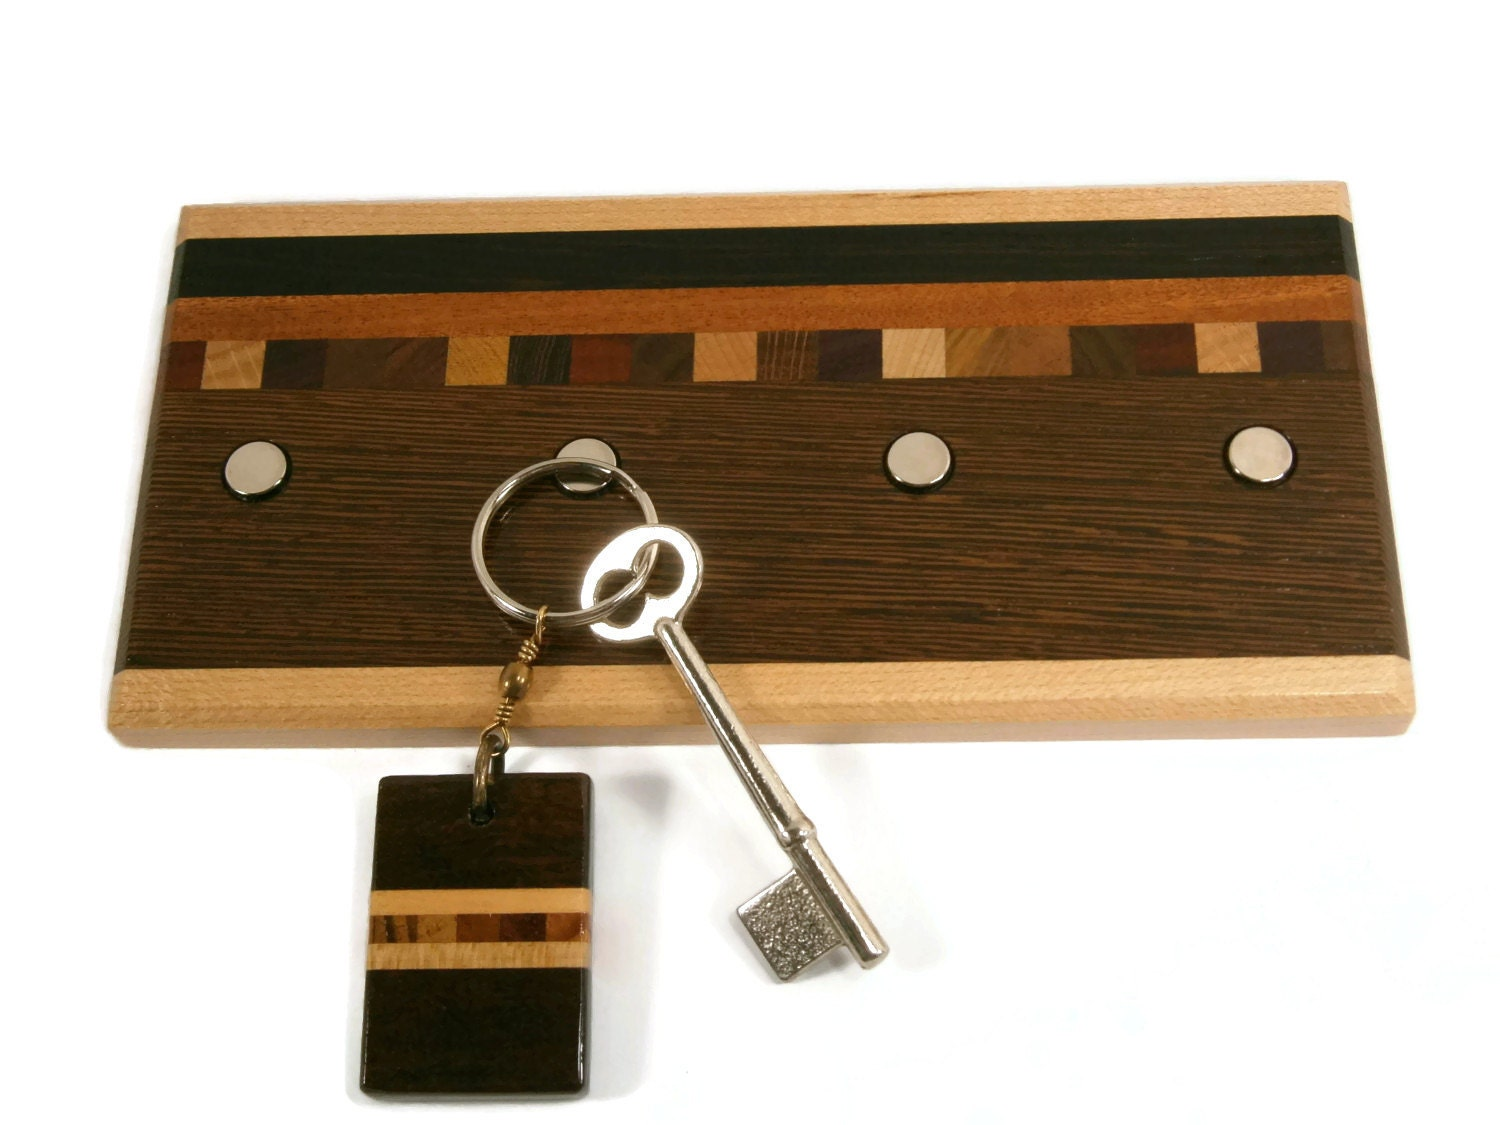 Key holder wood key holder functional decor office decor for Mural key holder